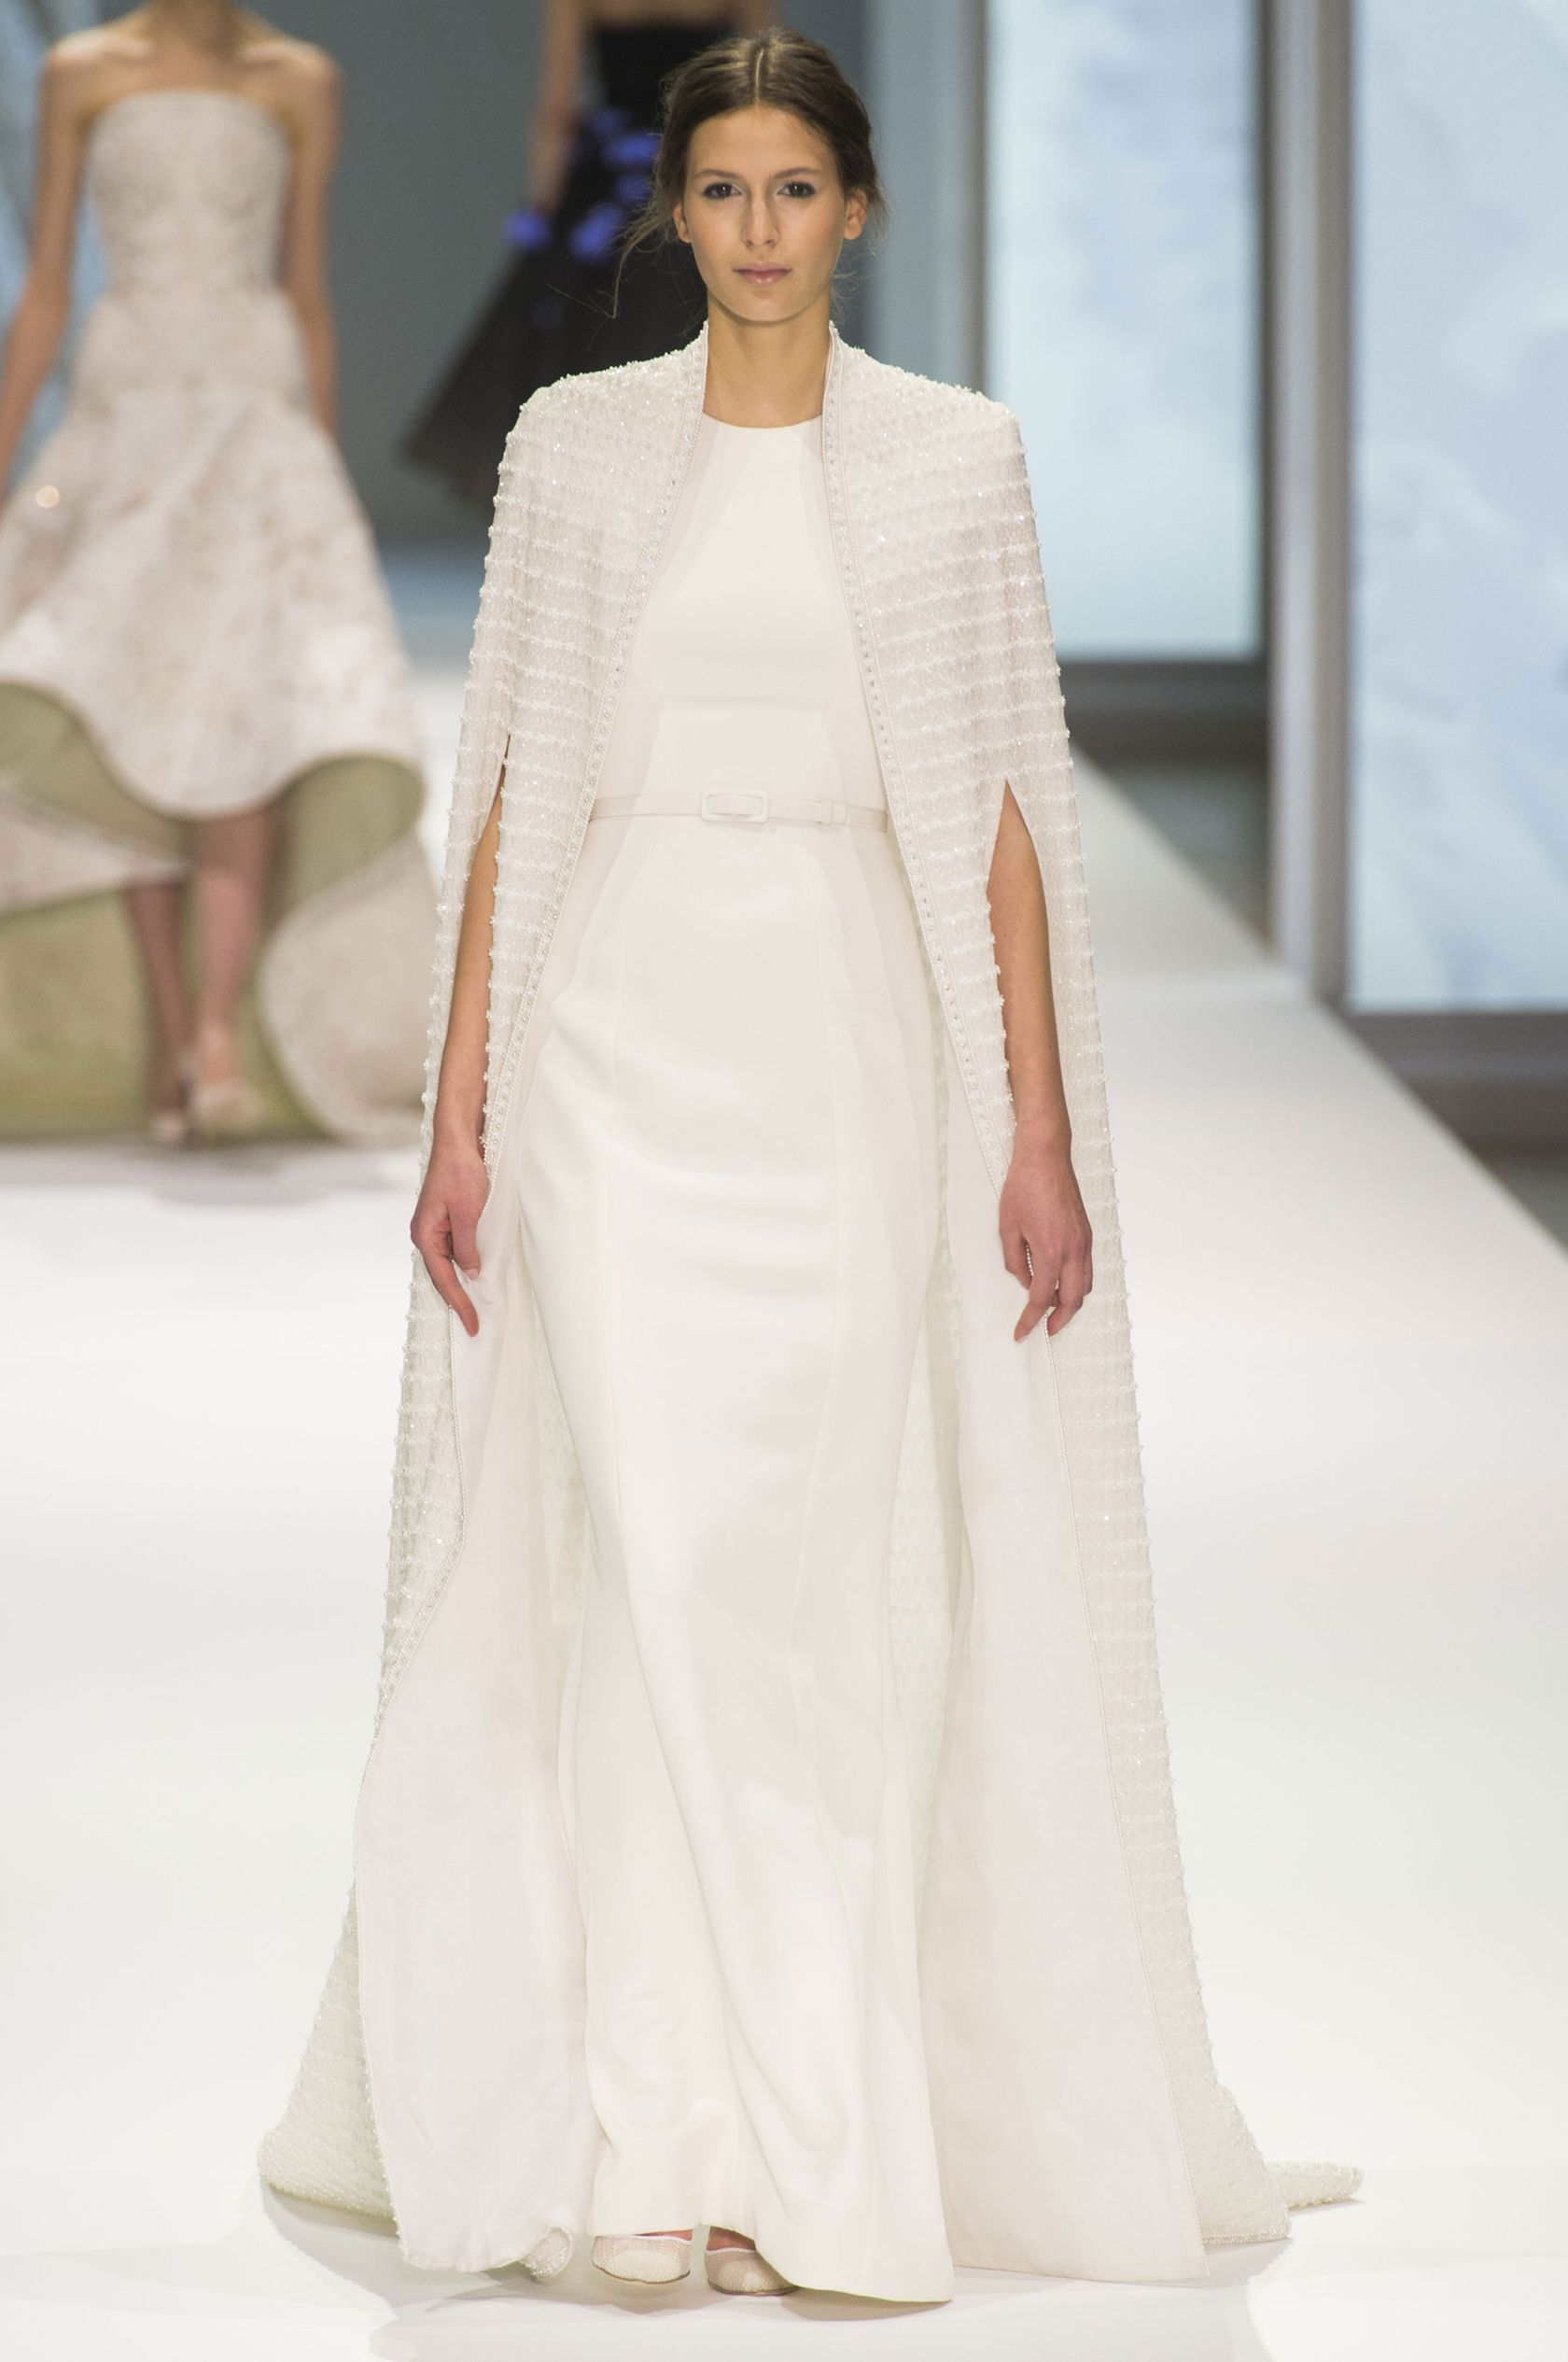 Ralph & Russo - 15 Best Cool Couture Wedding Dresses - The Cut